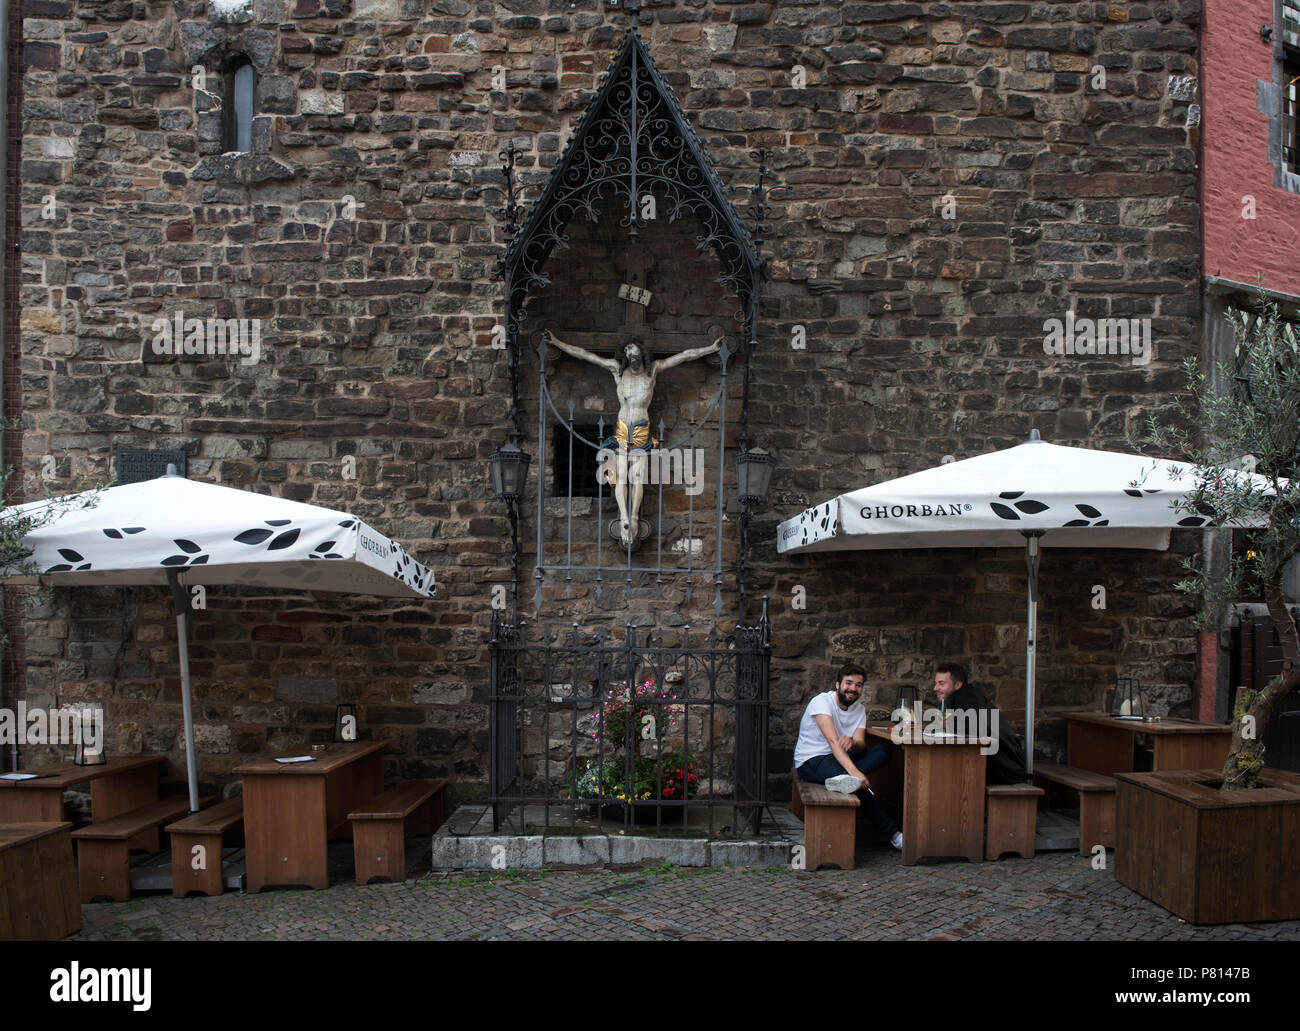 Aachen Germany June 2018 Aachen  or Bad Aachen, French and traditional English: Aix-la-Chapelle , is a spa and border city[2] in North Rhine-Westphali - Stock Image